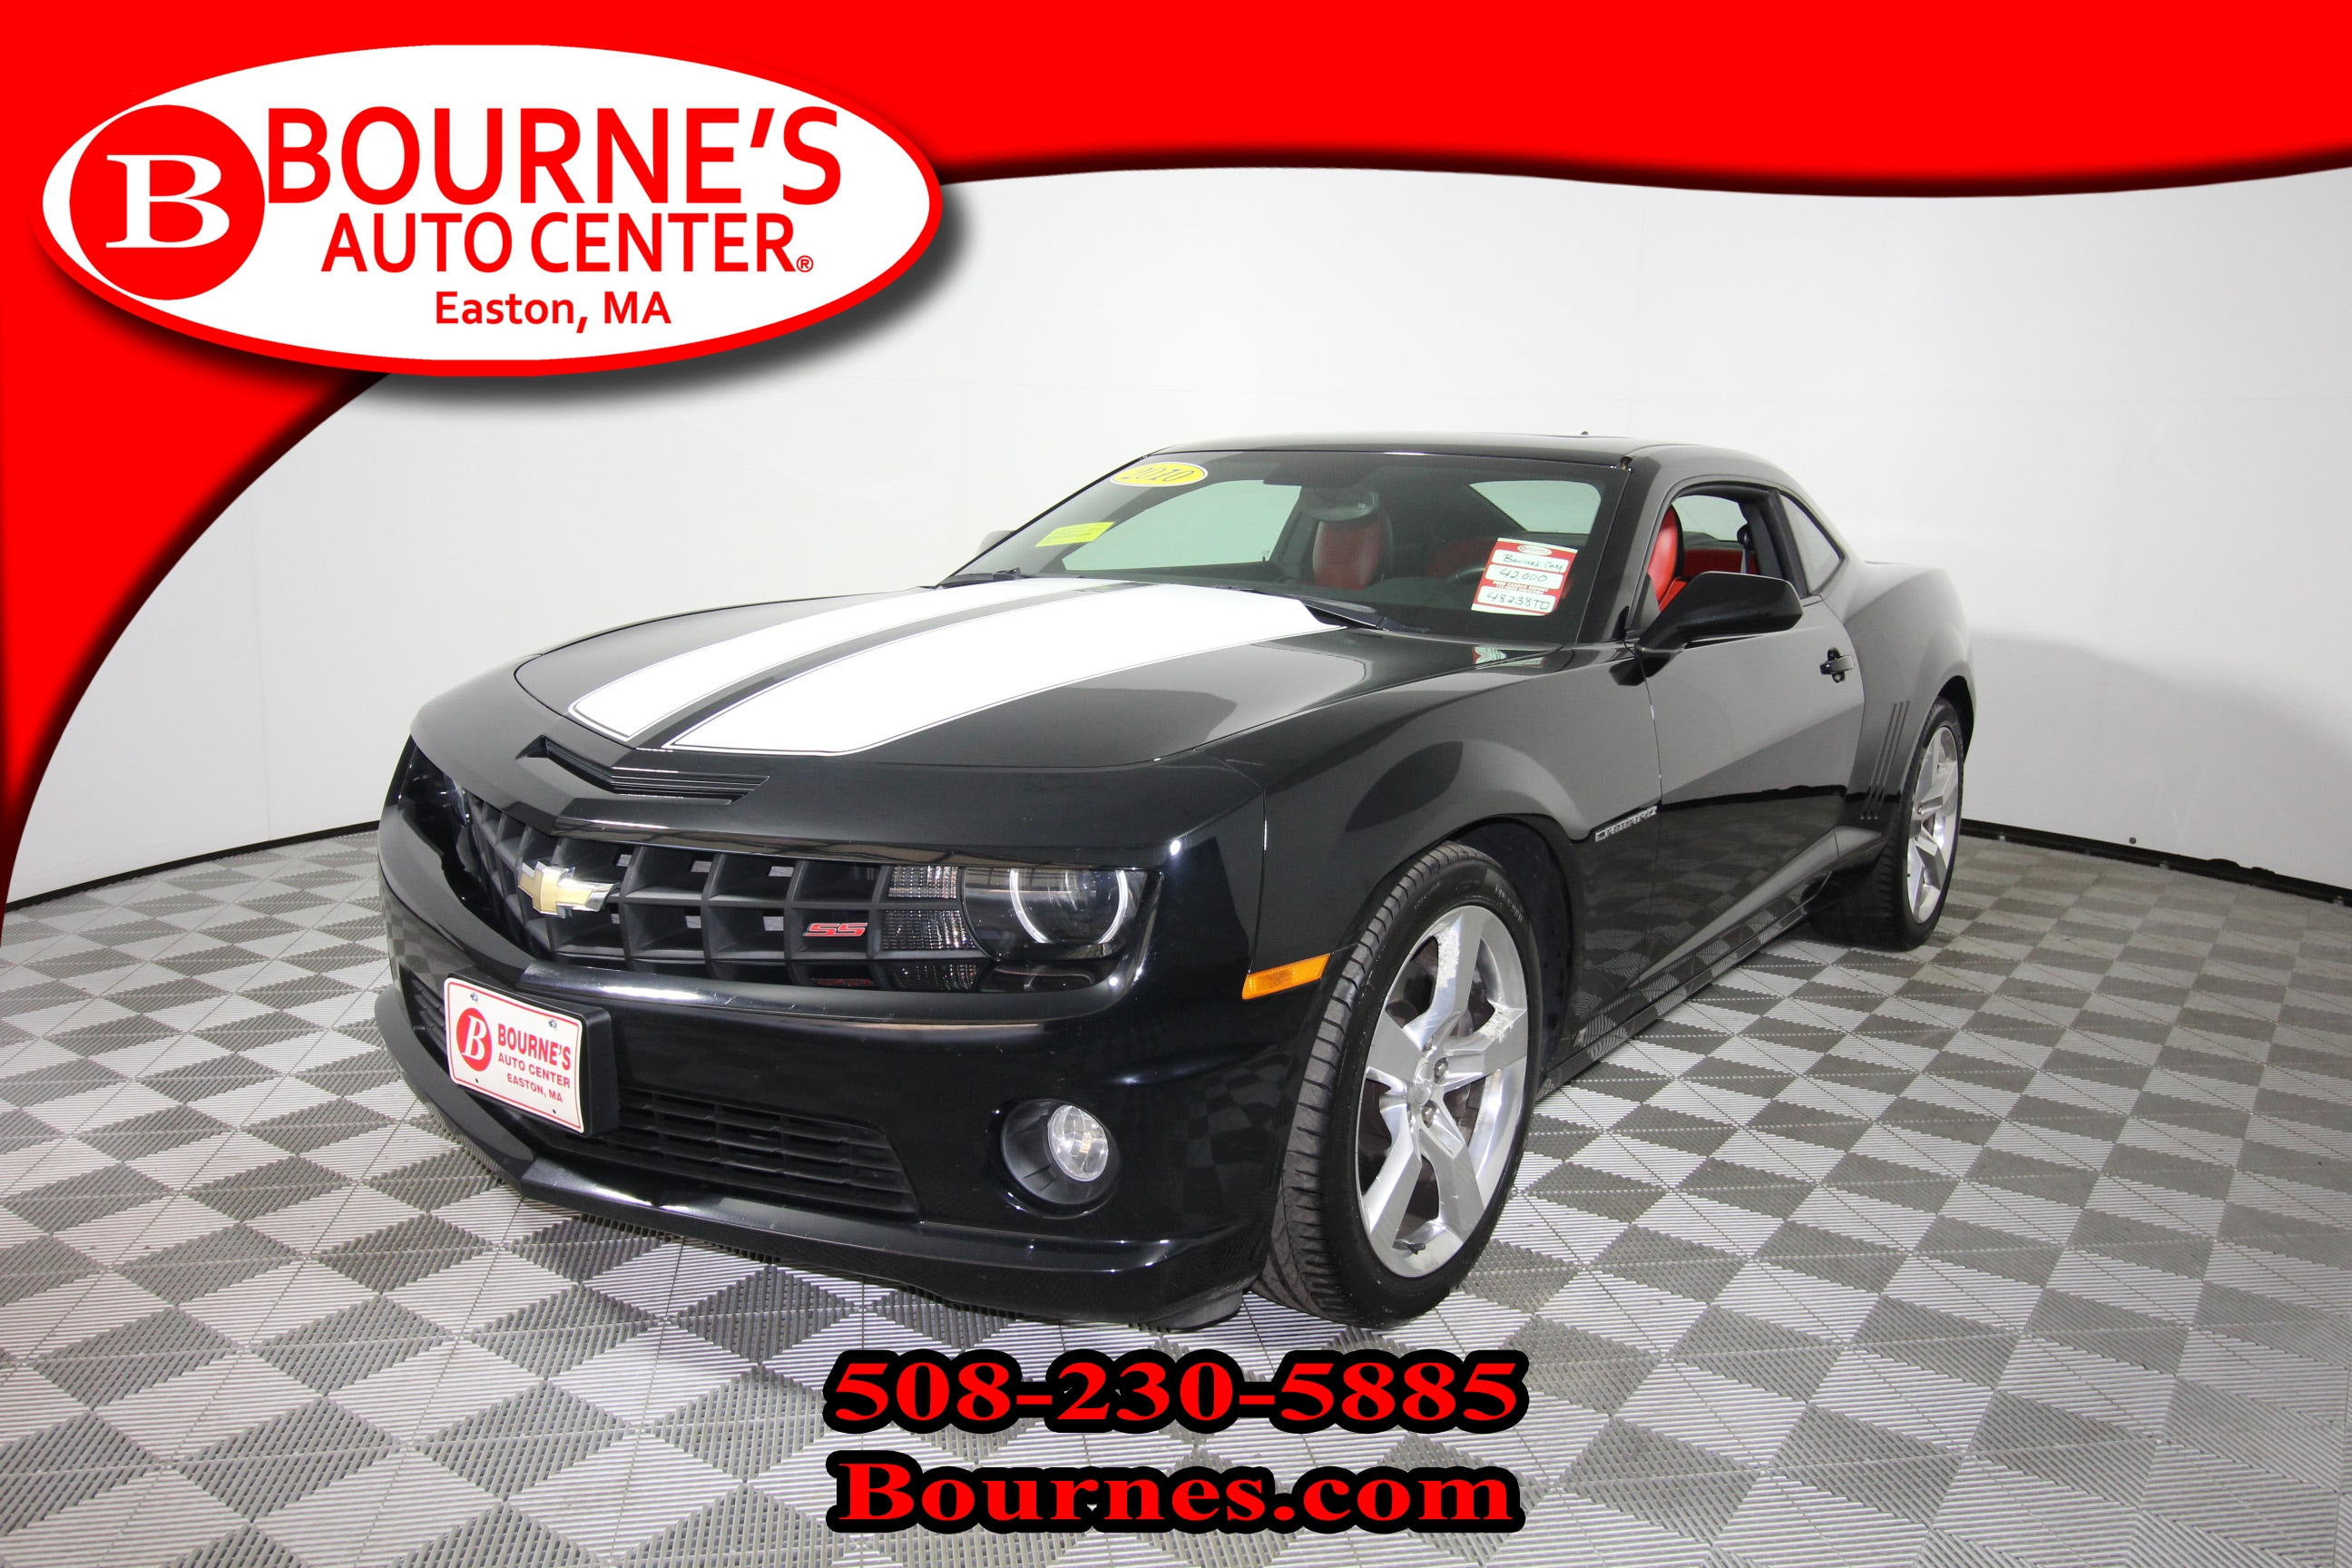 2010 Chevrolet Camaro 2SS w/ Leather,Sunroof, And Heated Front Seats. Coupe